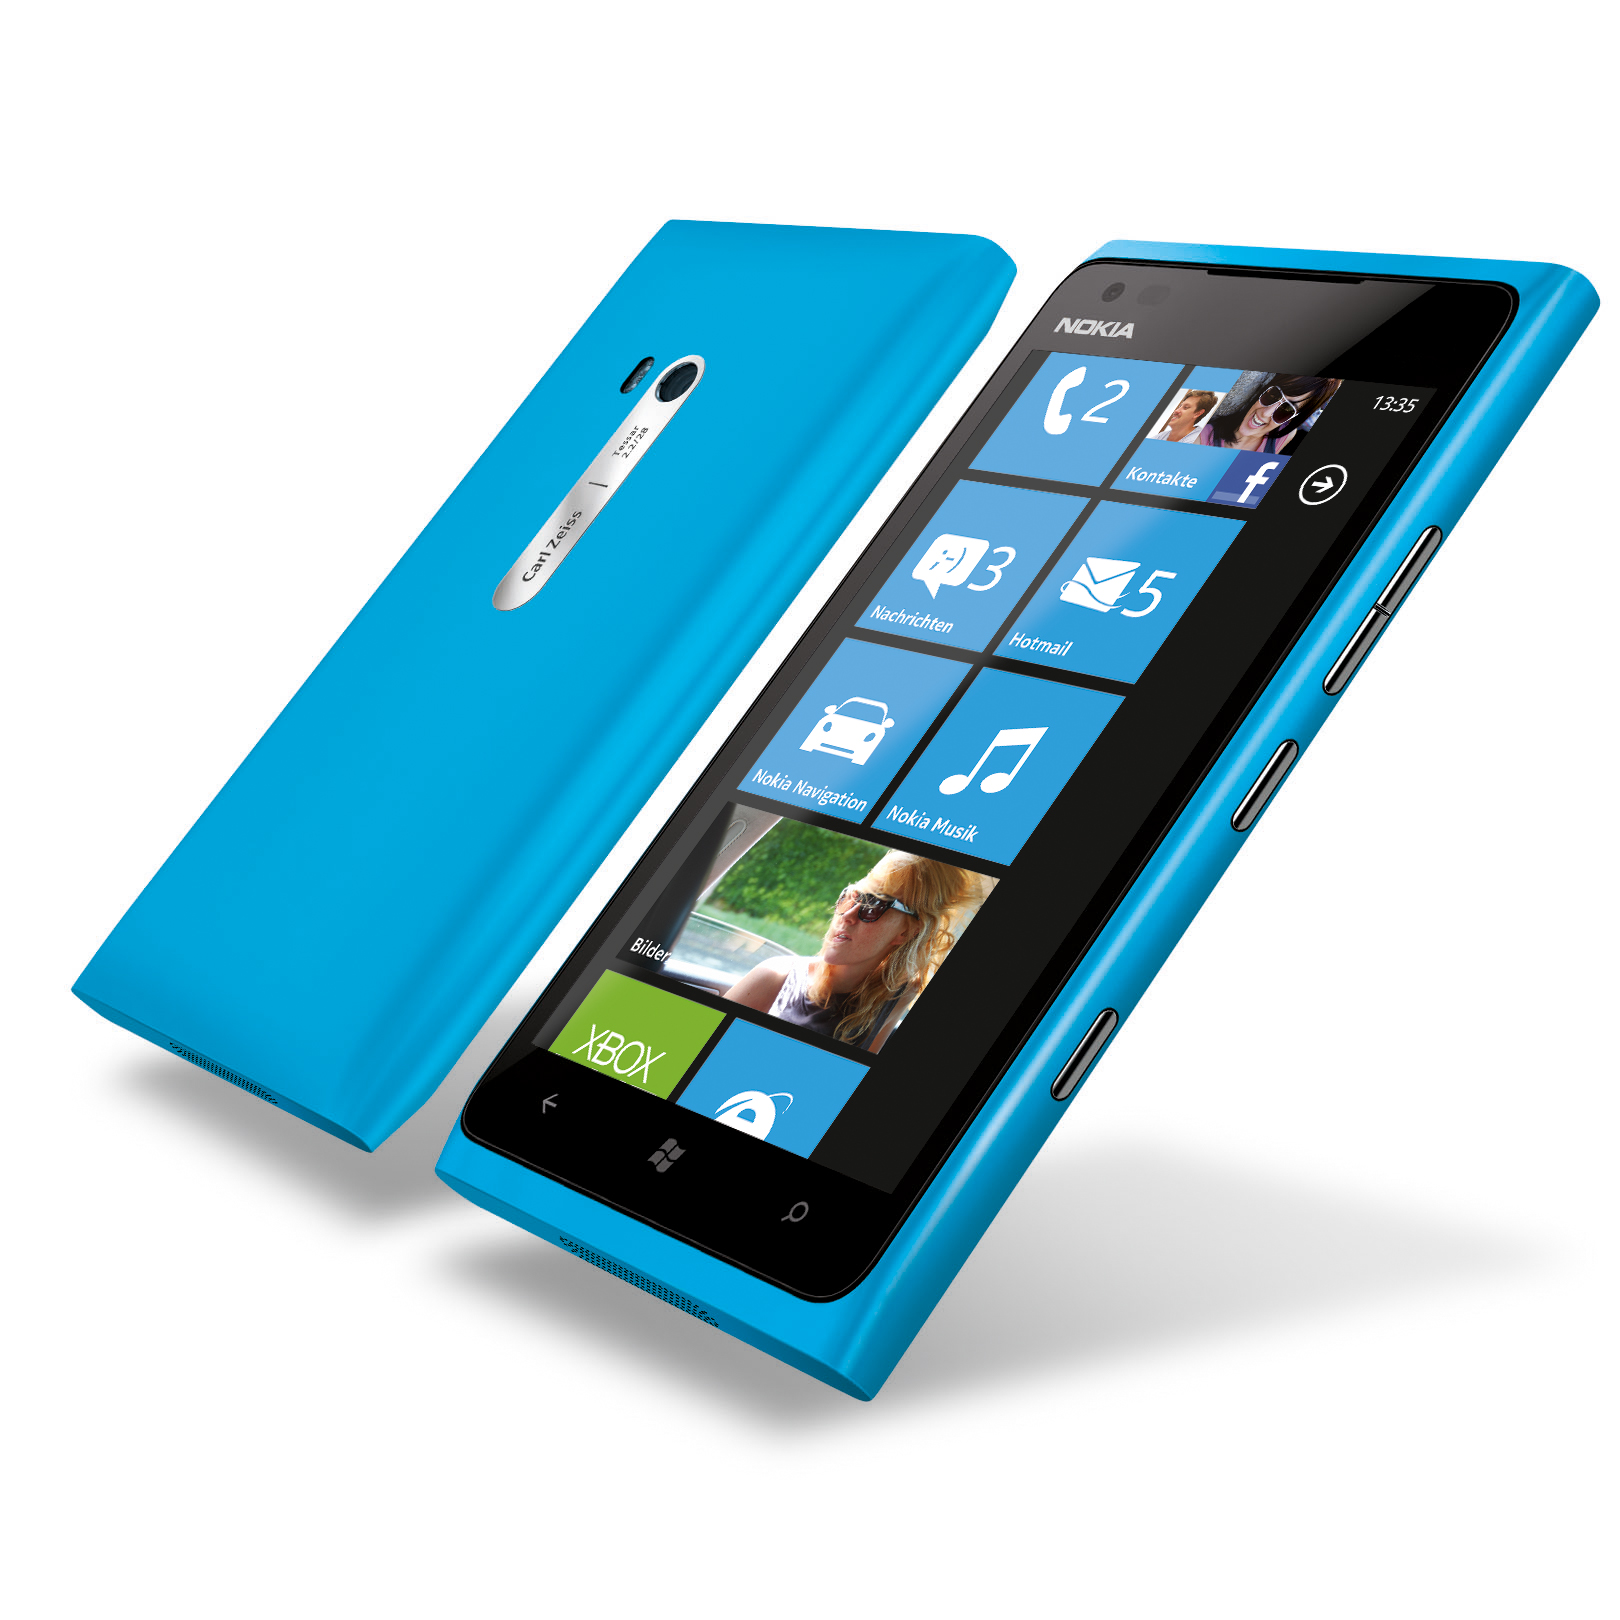 Nokia Lumia 900 –Das neue Windows Smartphone